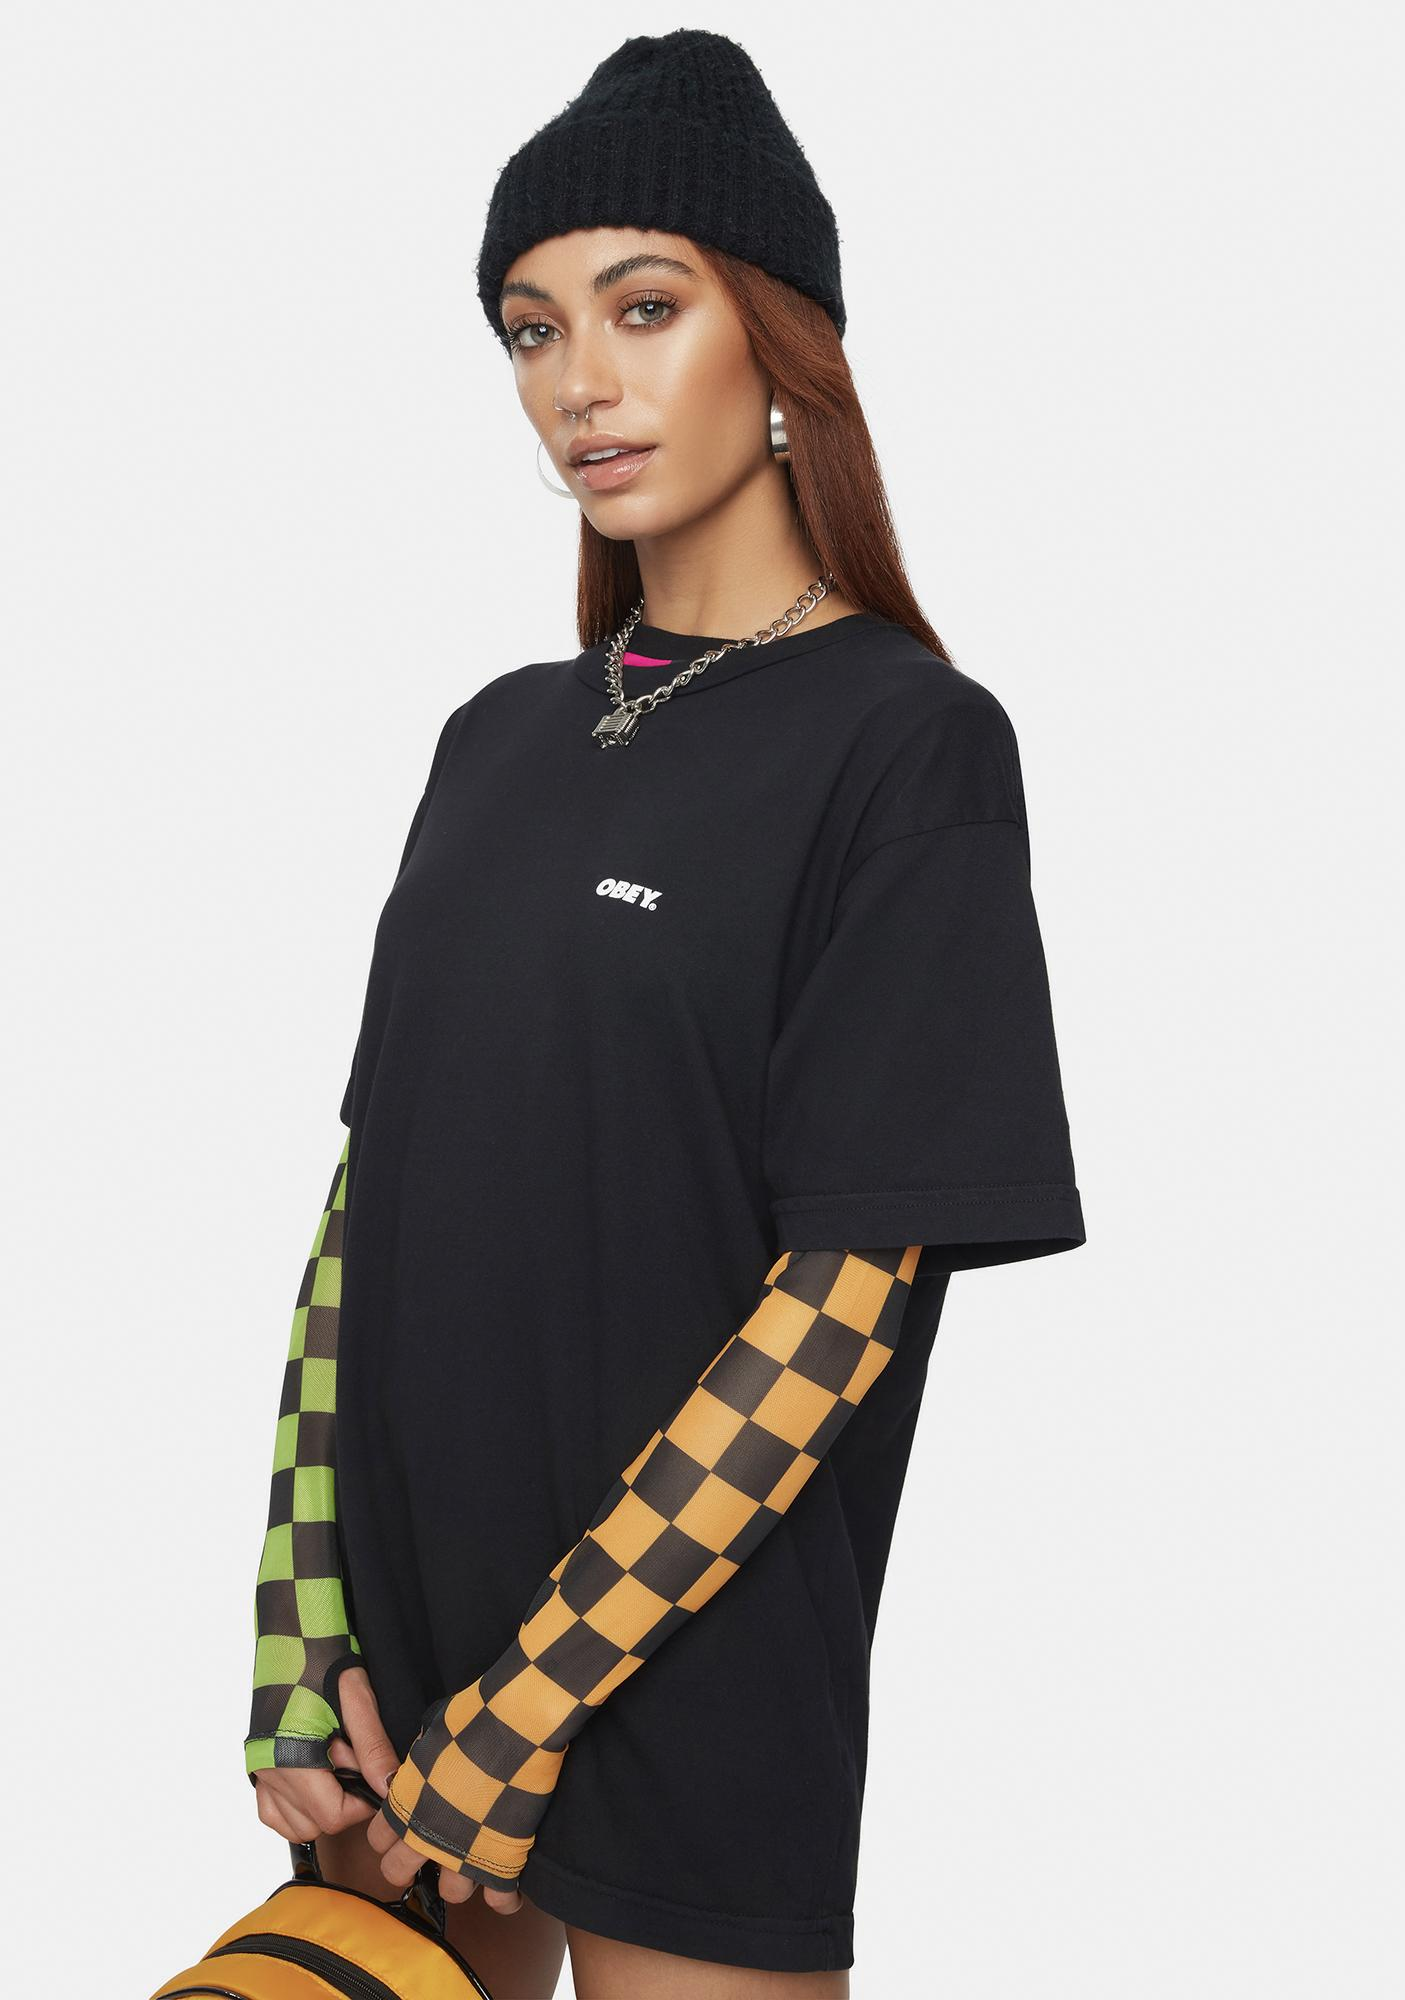 Obey Protect The Planet Organic Graphic Tee